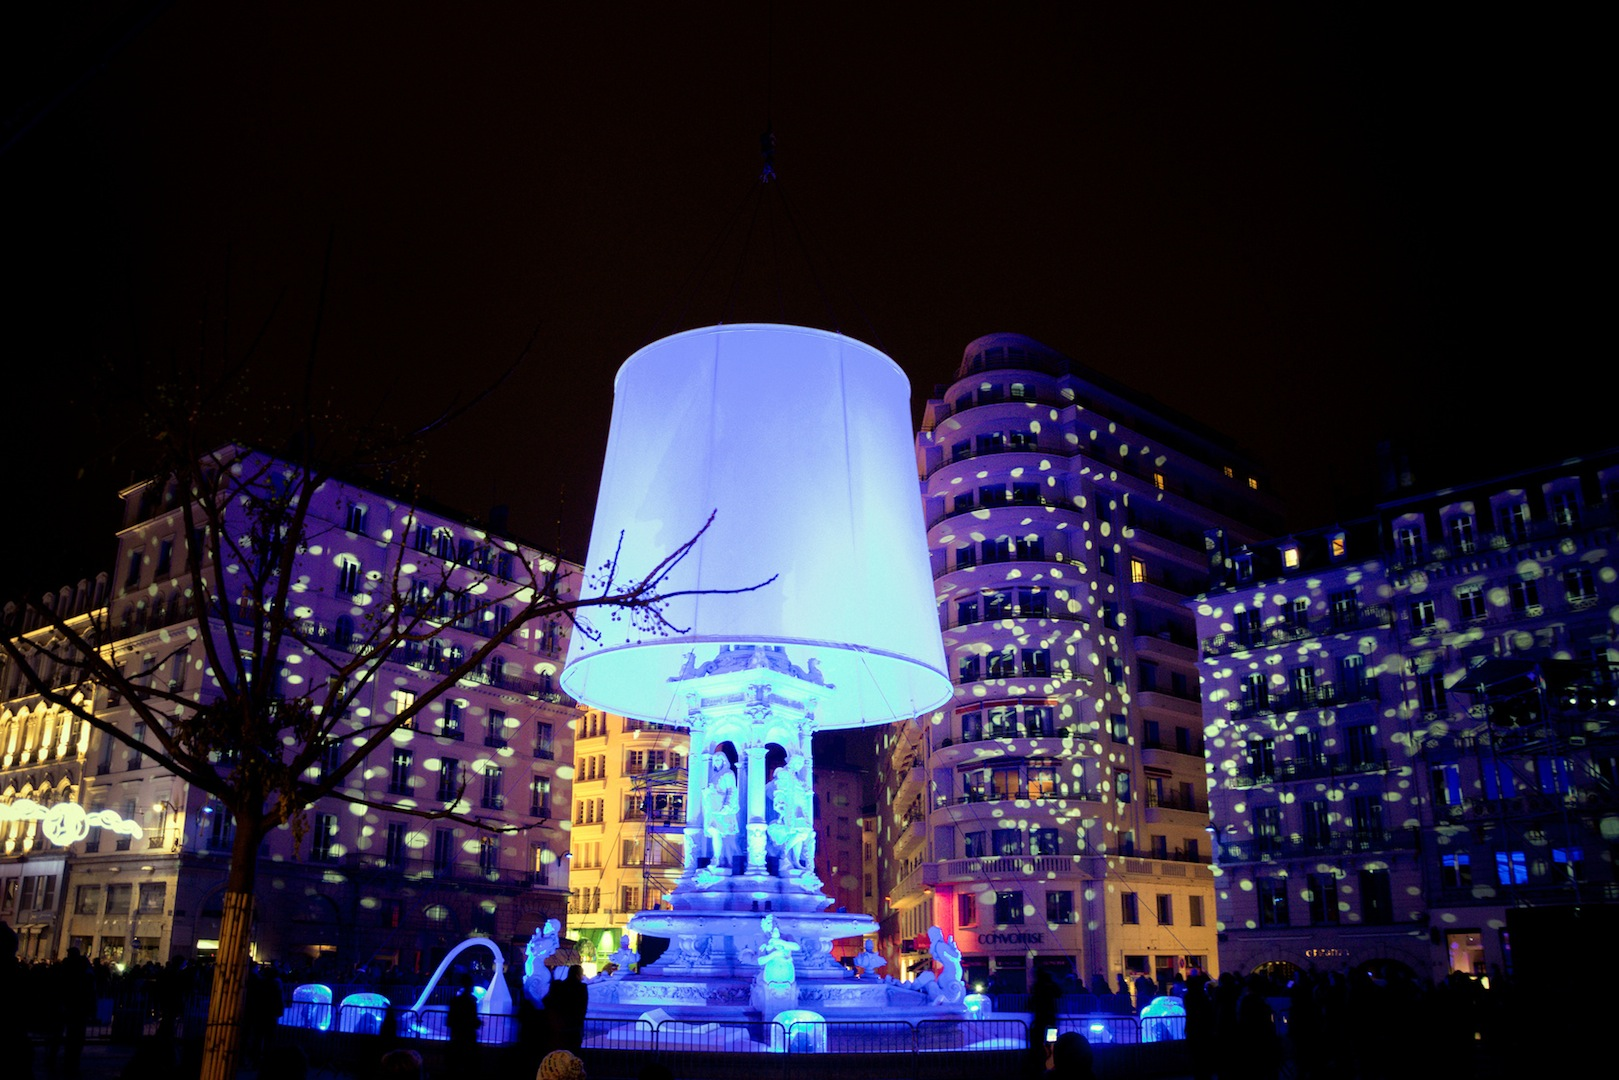 YON, FRANCE - DECEMBER 6, 2014: street view of Festival of Lights in Lyon, France. The origins of the Fête des Lumières date to 1643.